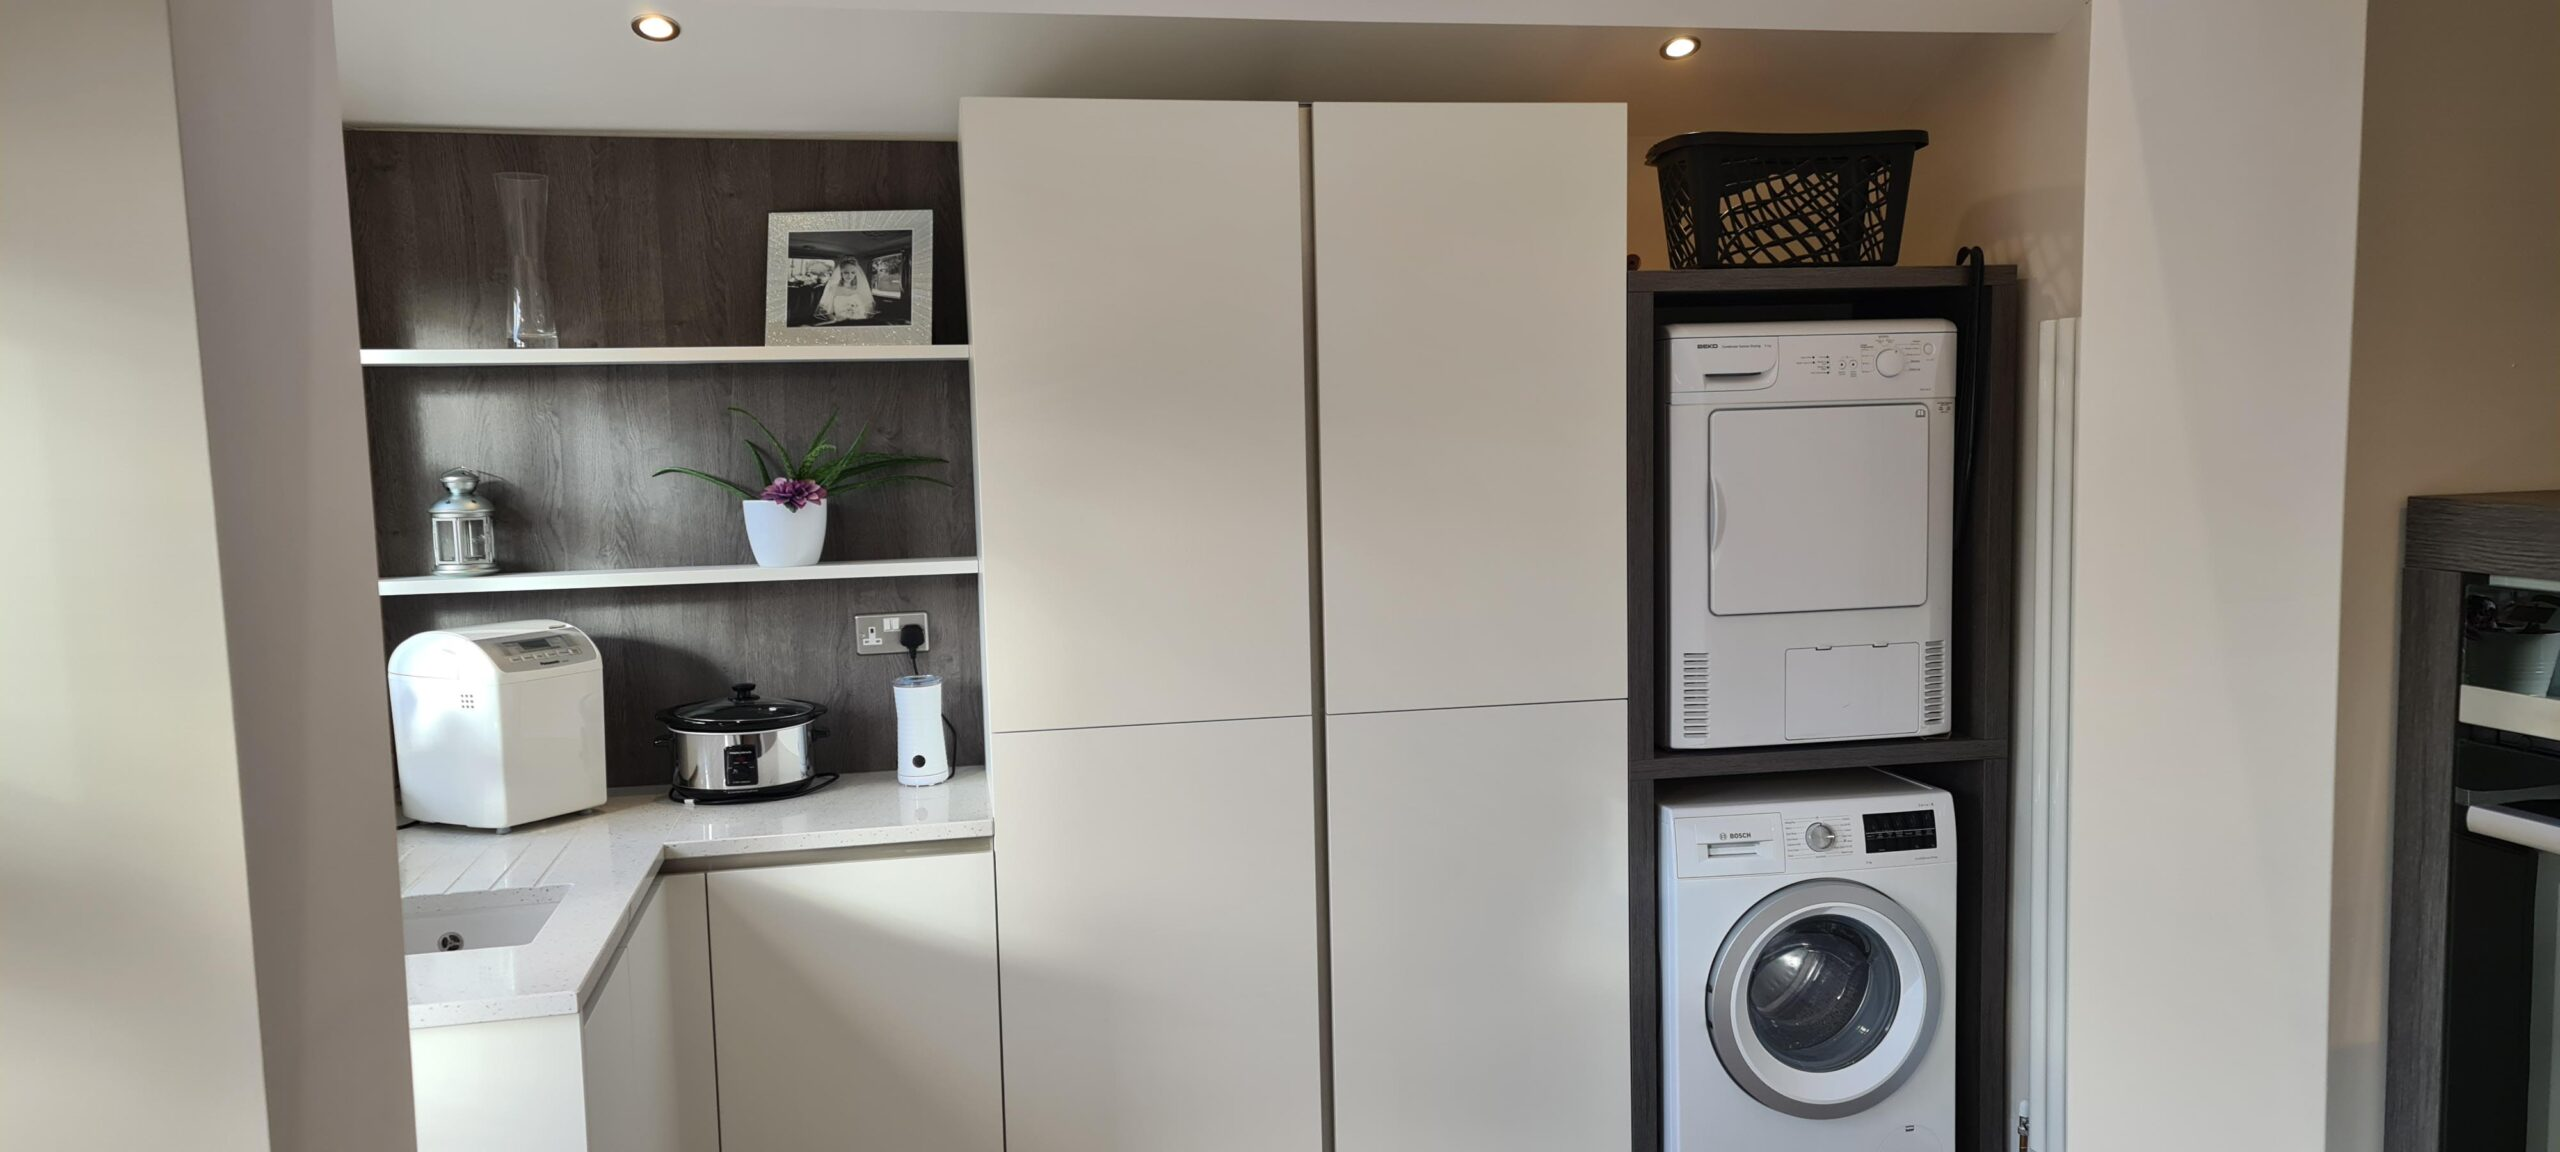 An image of a kitchen utilising all available space